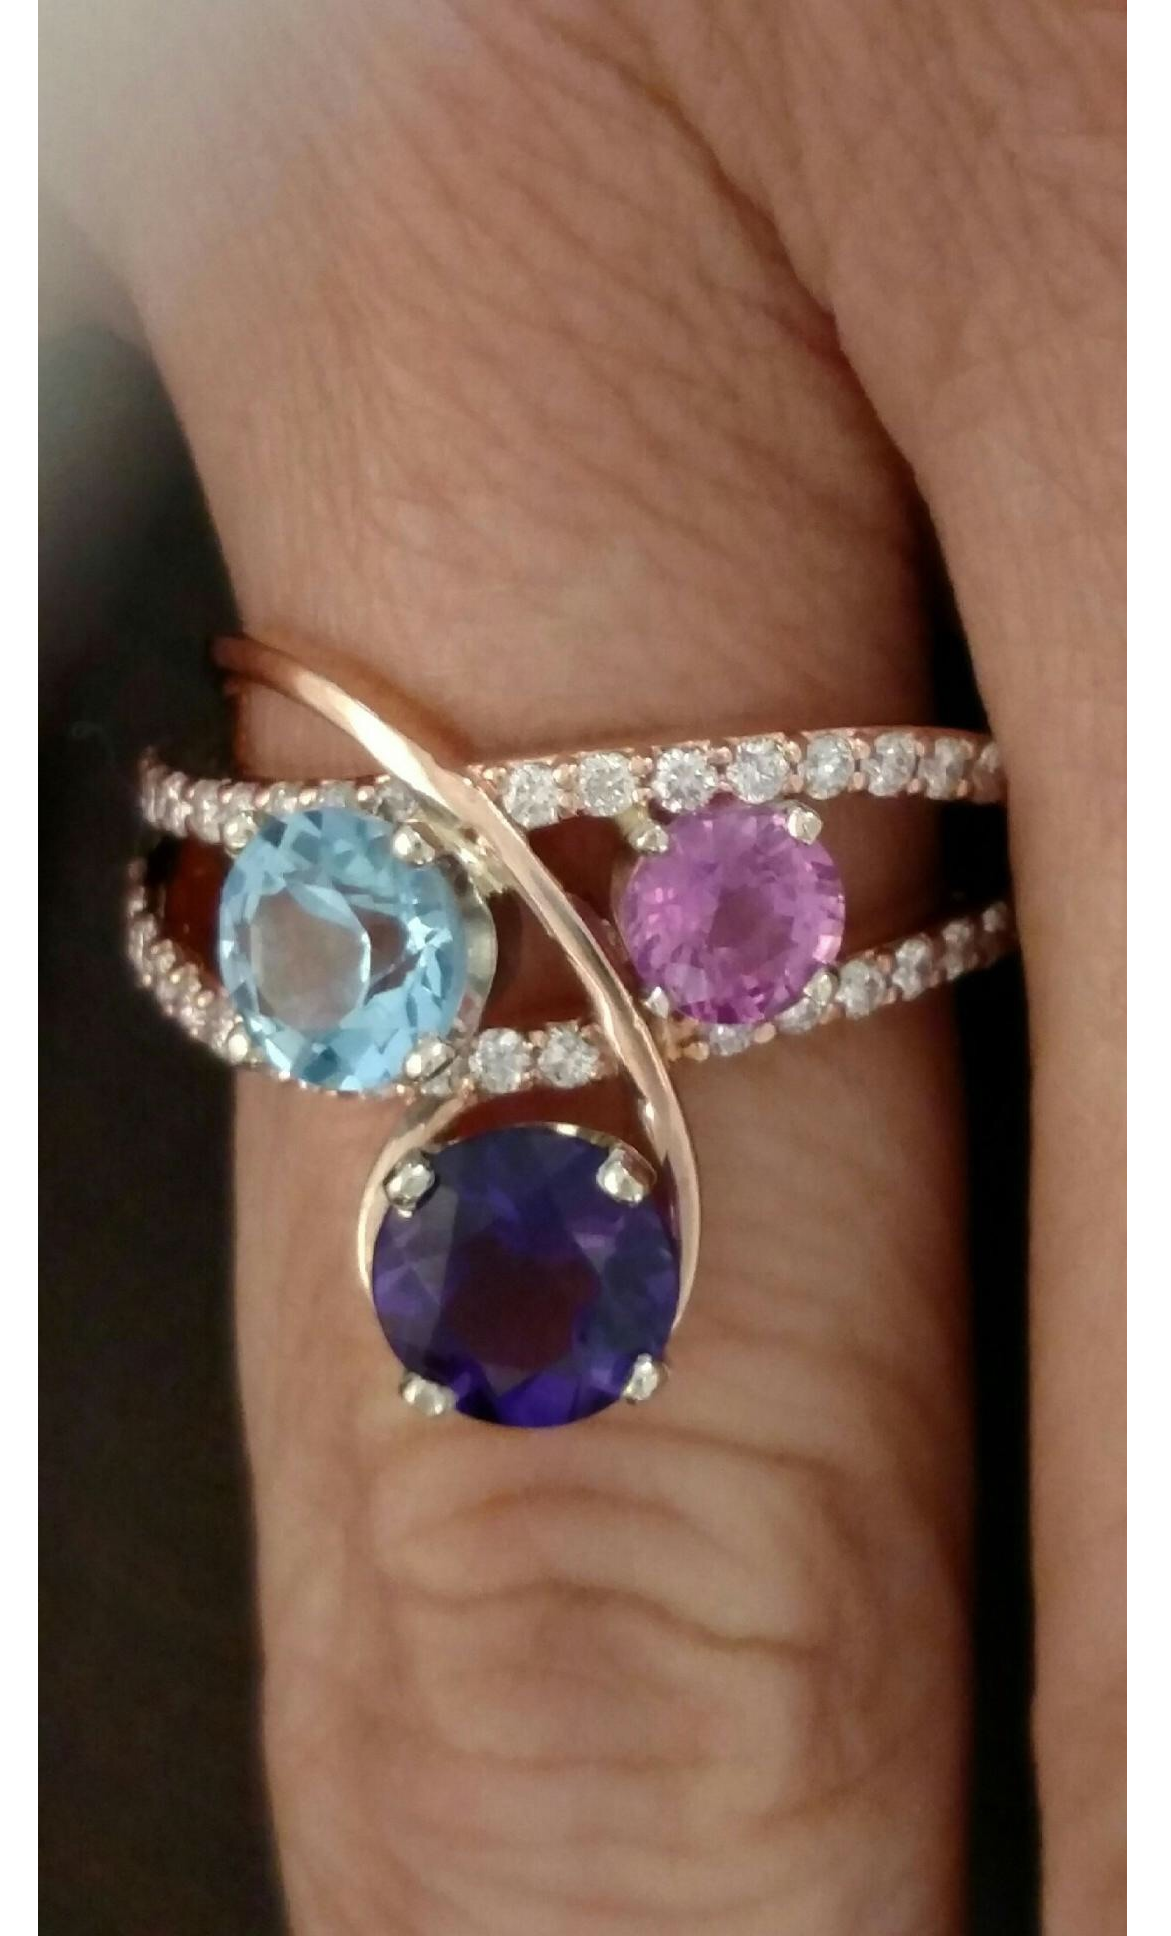 completed ring